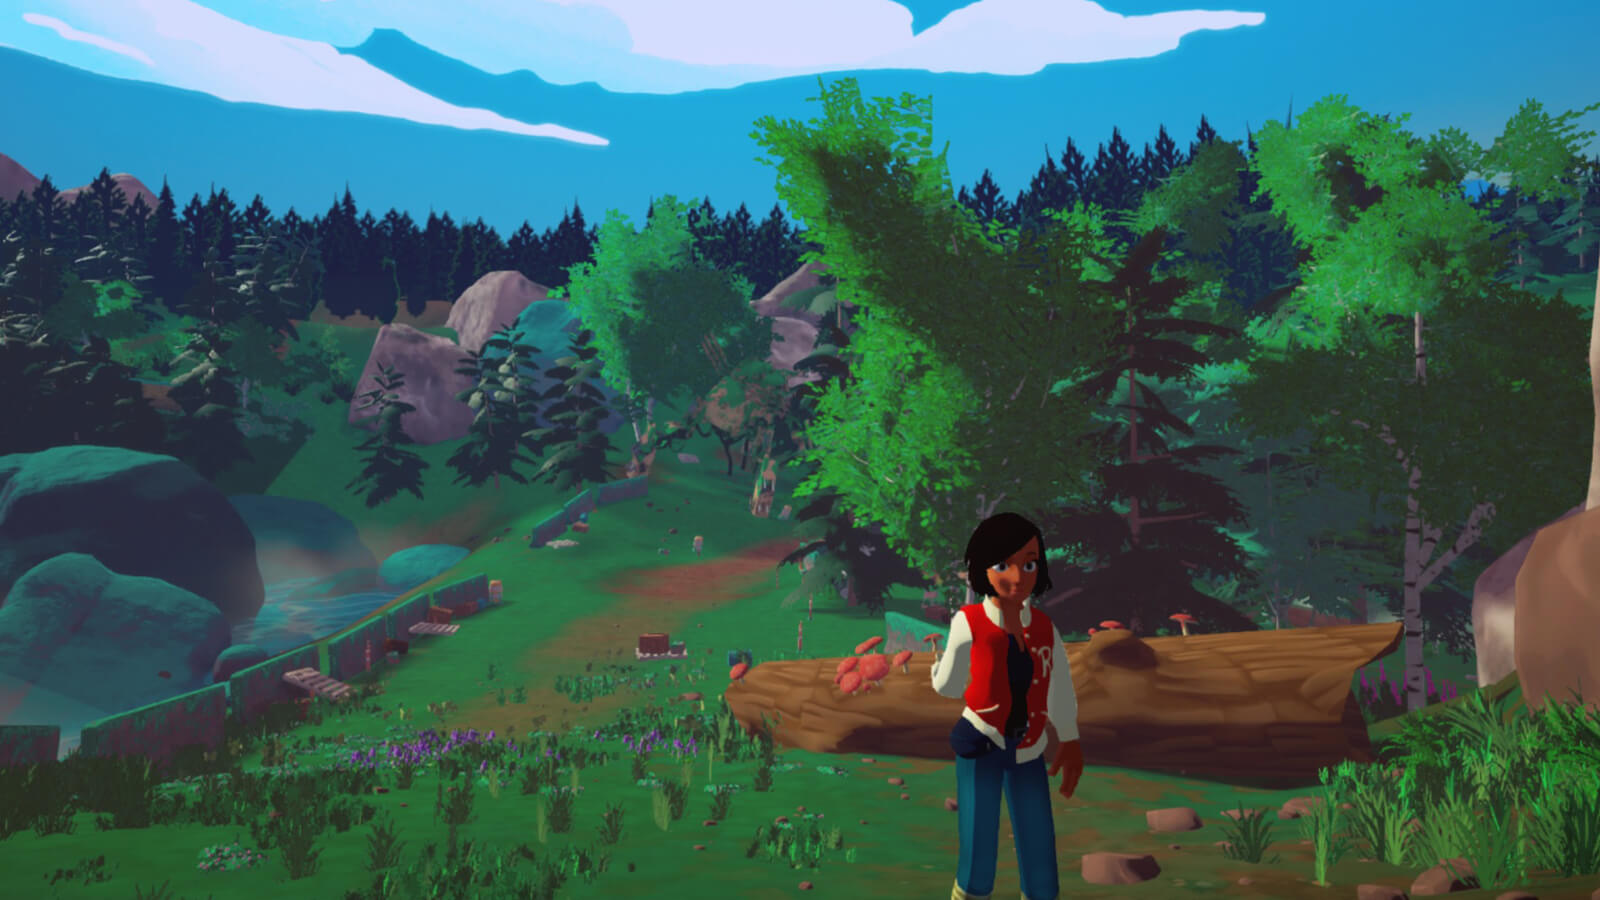 Elegy's main character, Robin, walking up a hill in a forested landscape